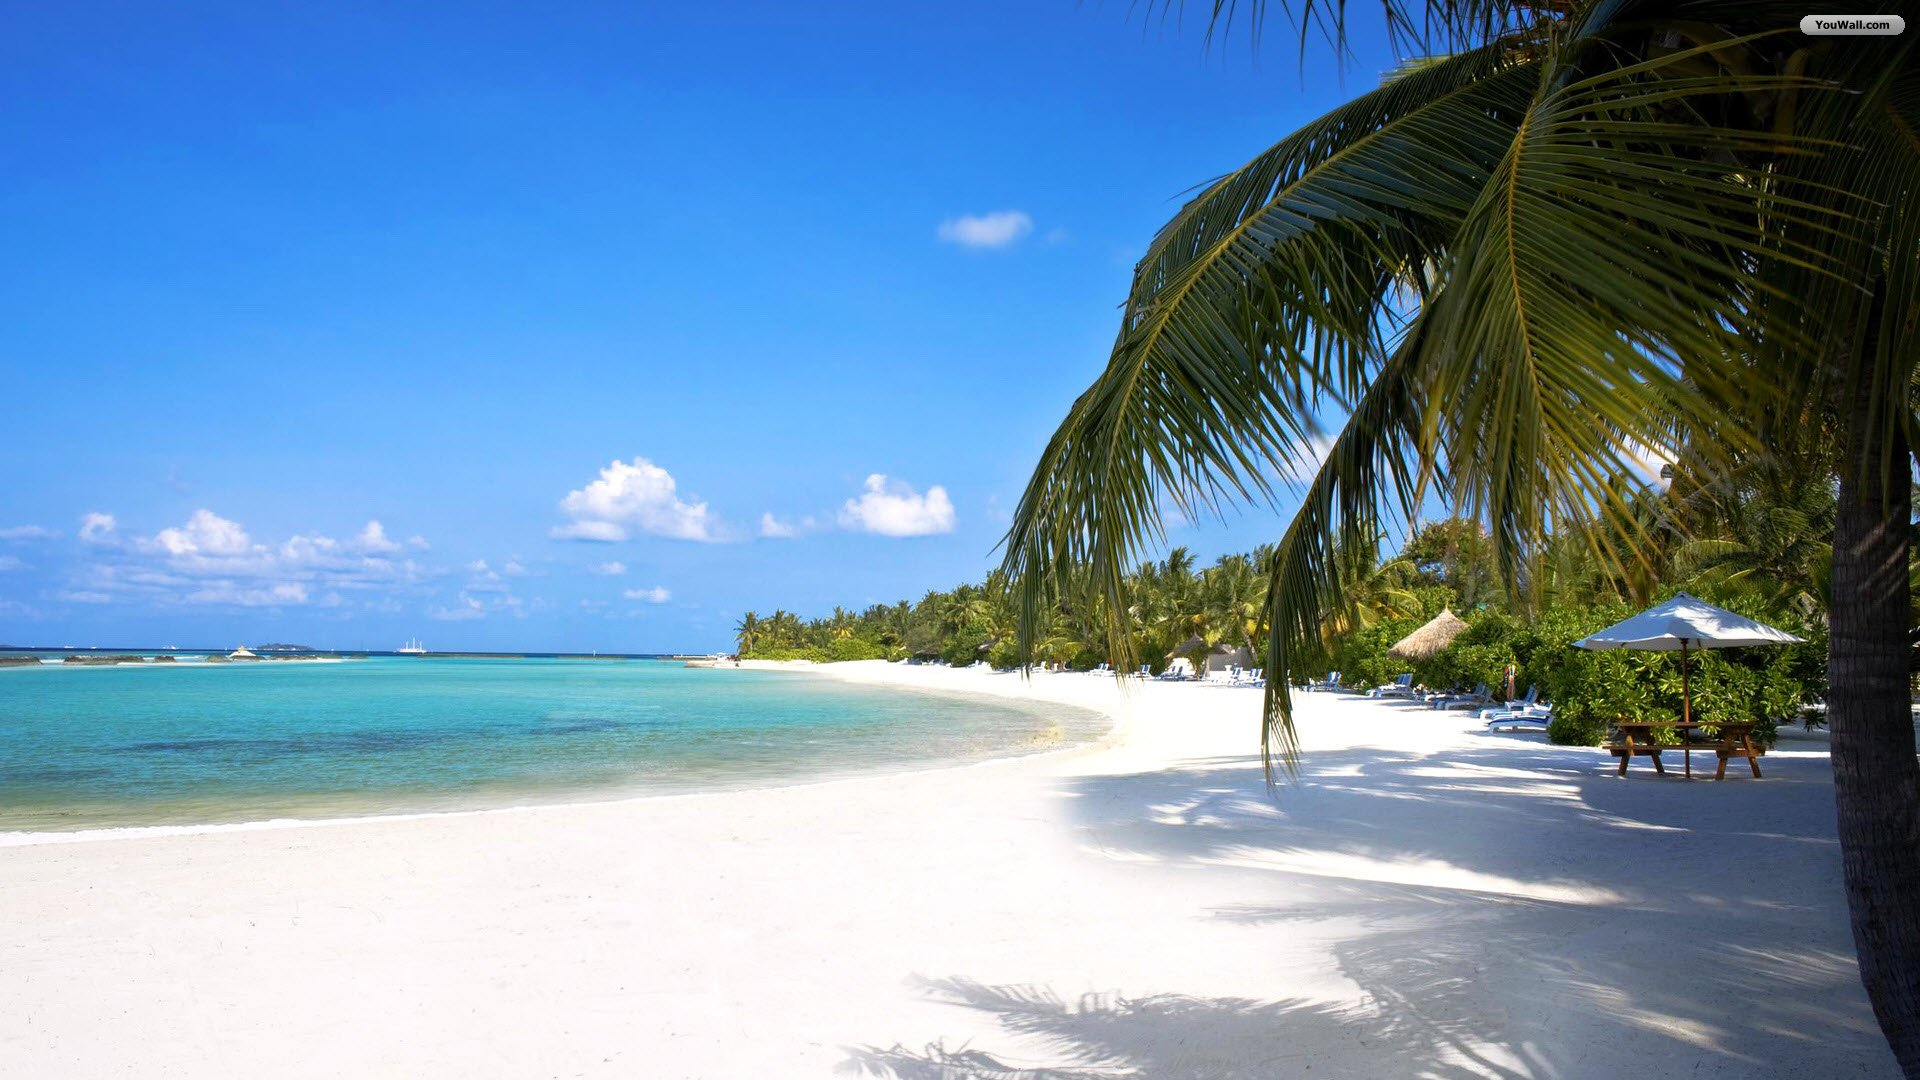 Tropical Beach Wallpaper High Resolution Is Cool Wallpapers